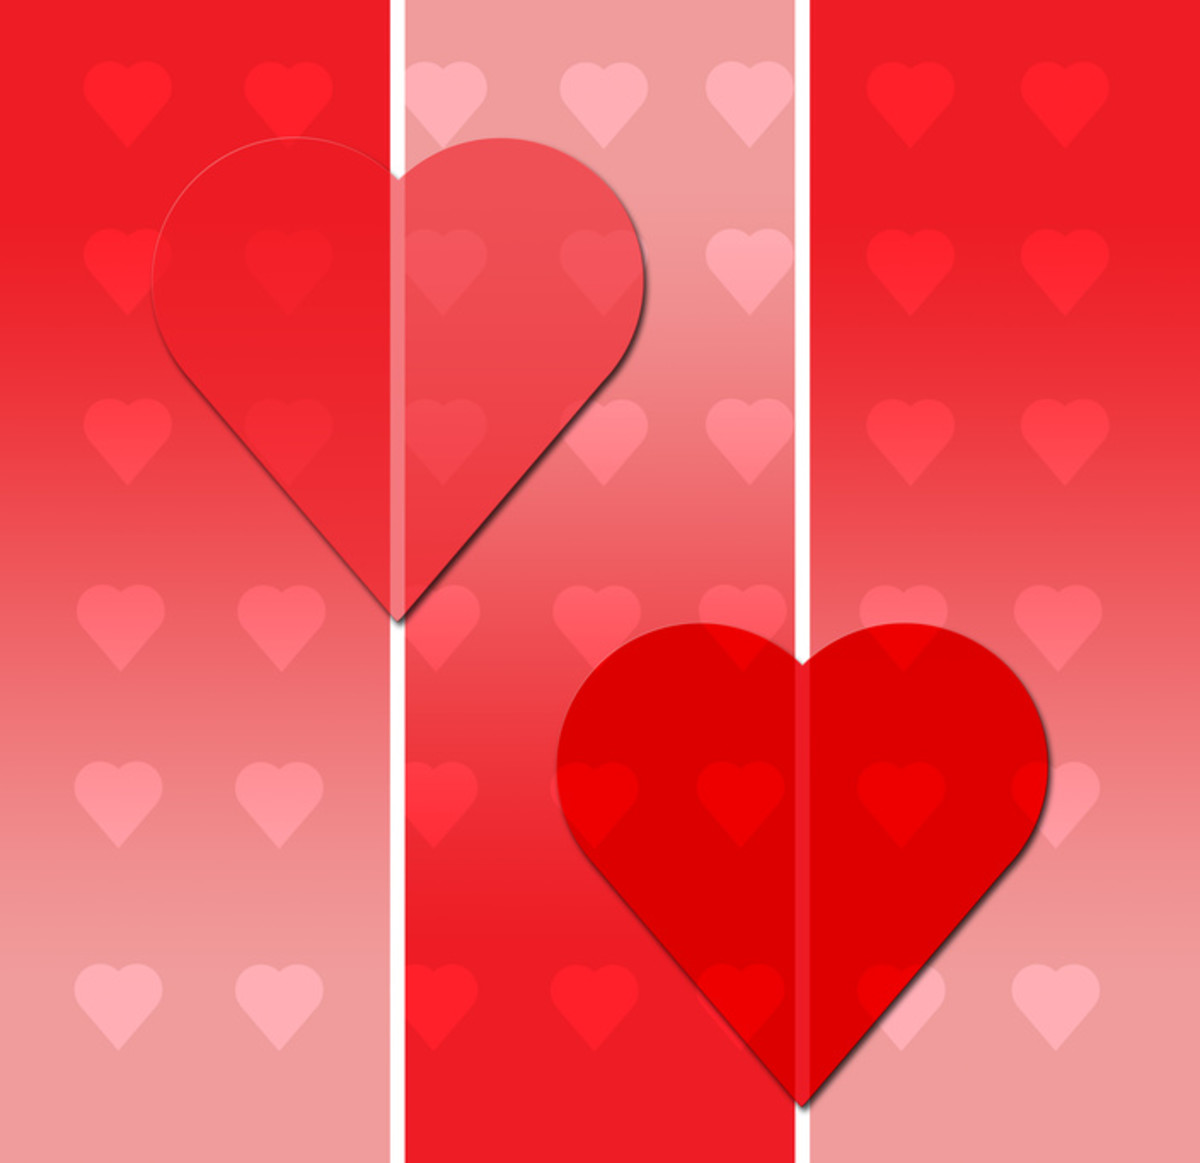 Red Hearts Image